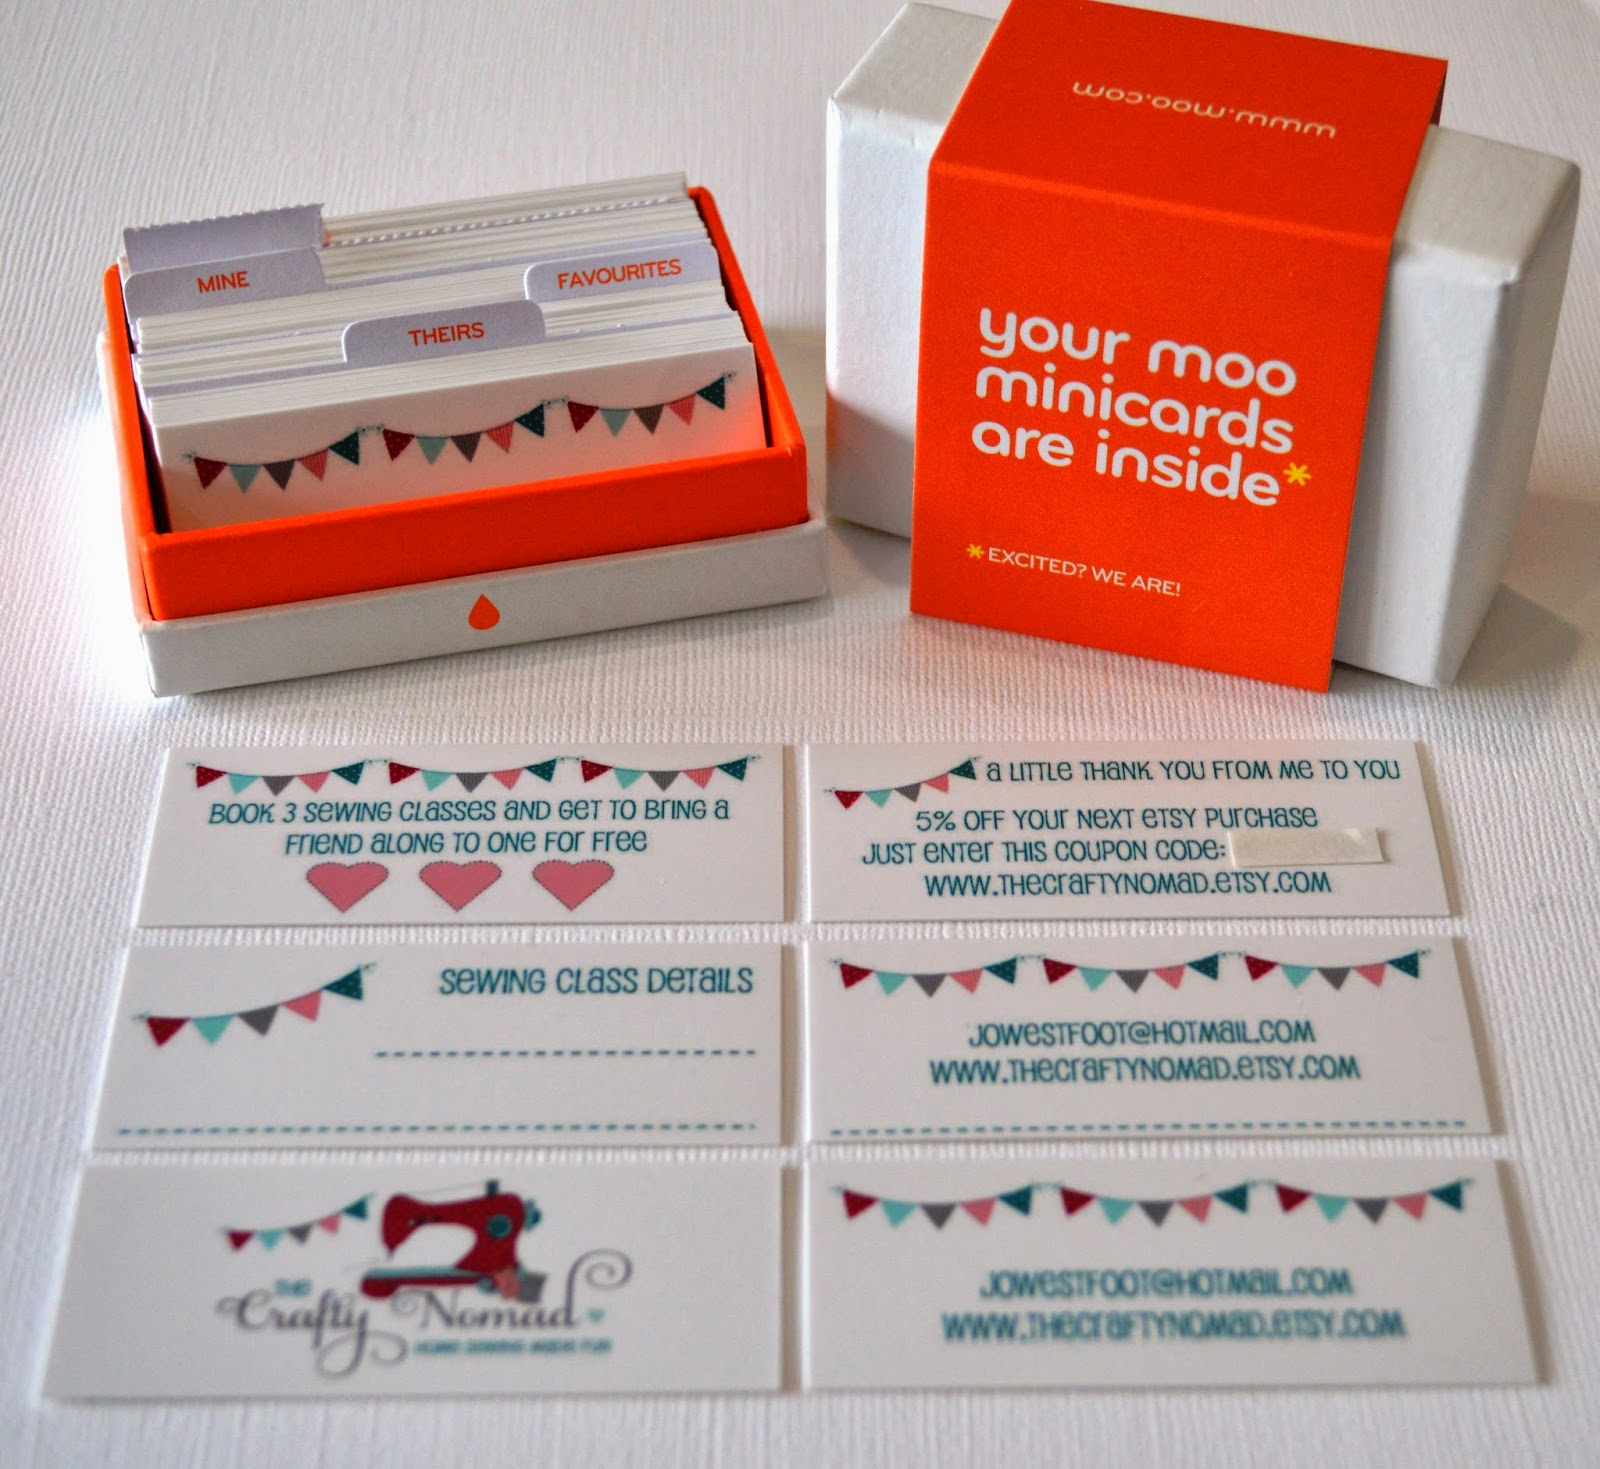 The Crafty Nomad: Branding! plus 10% discount Moo Cards code!